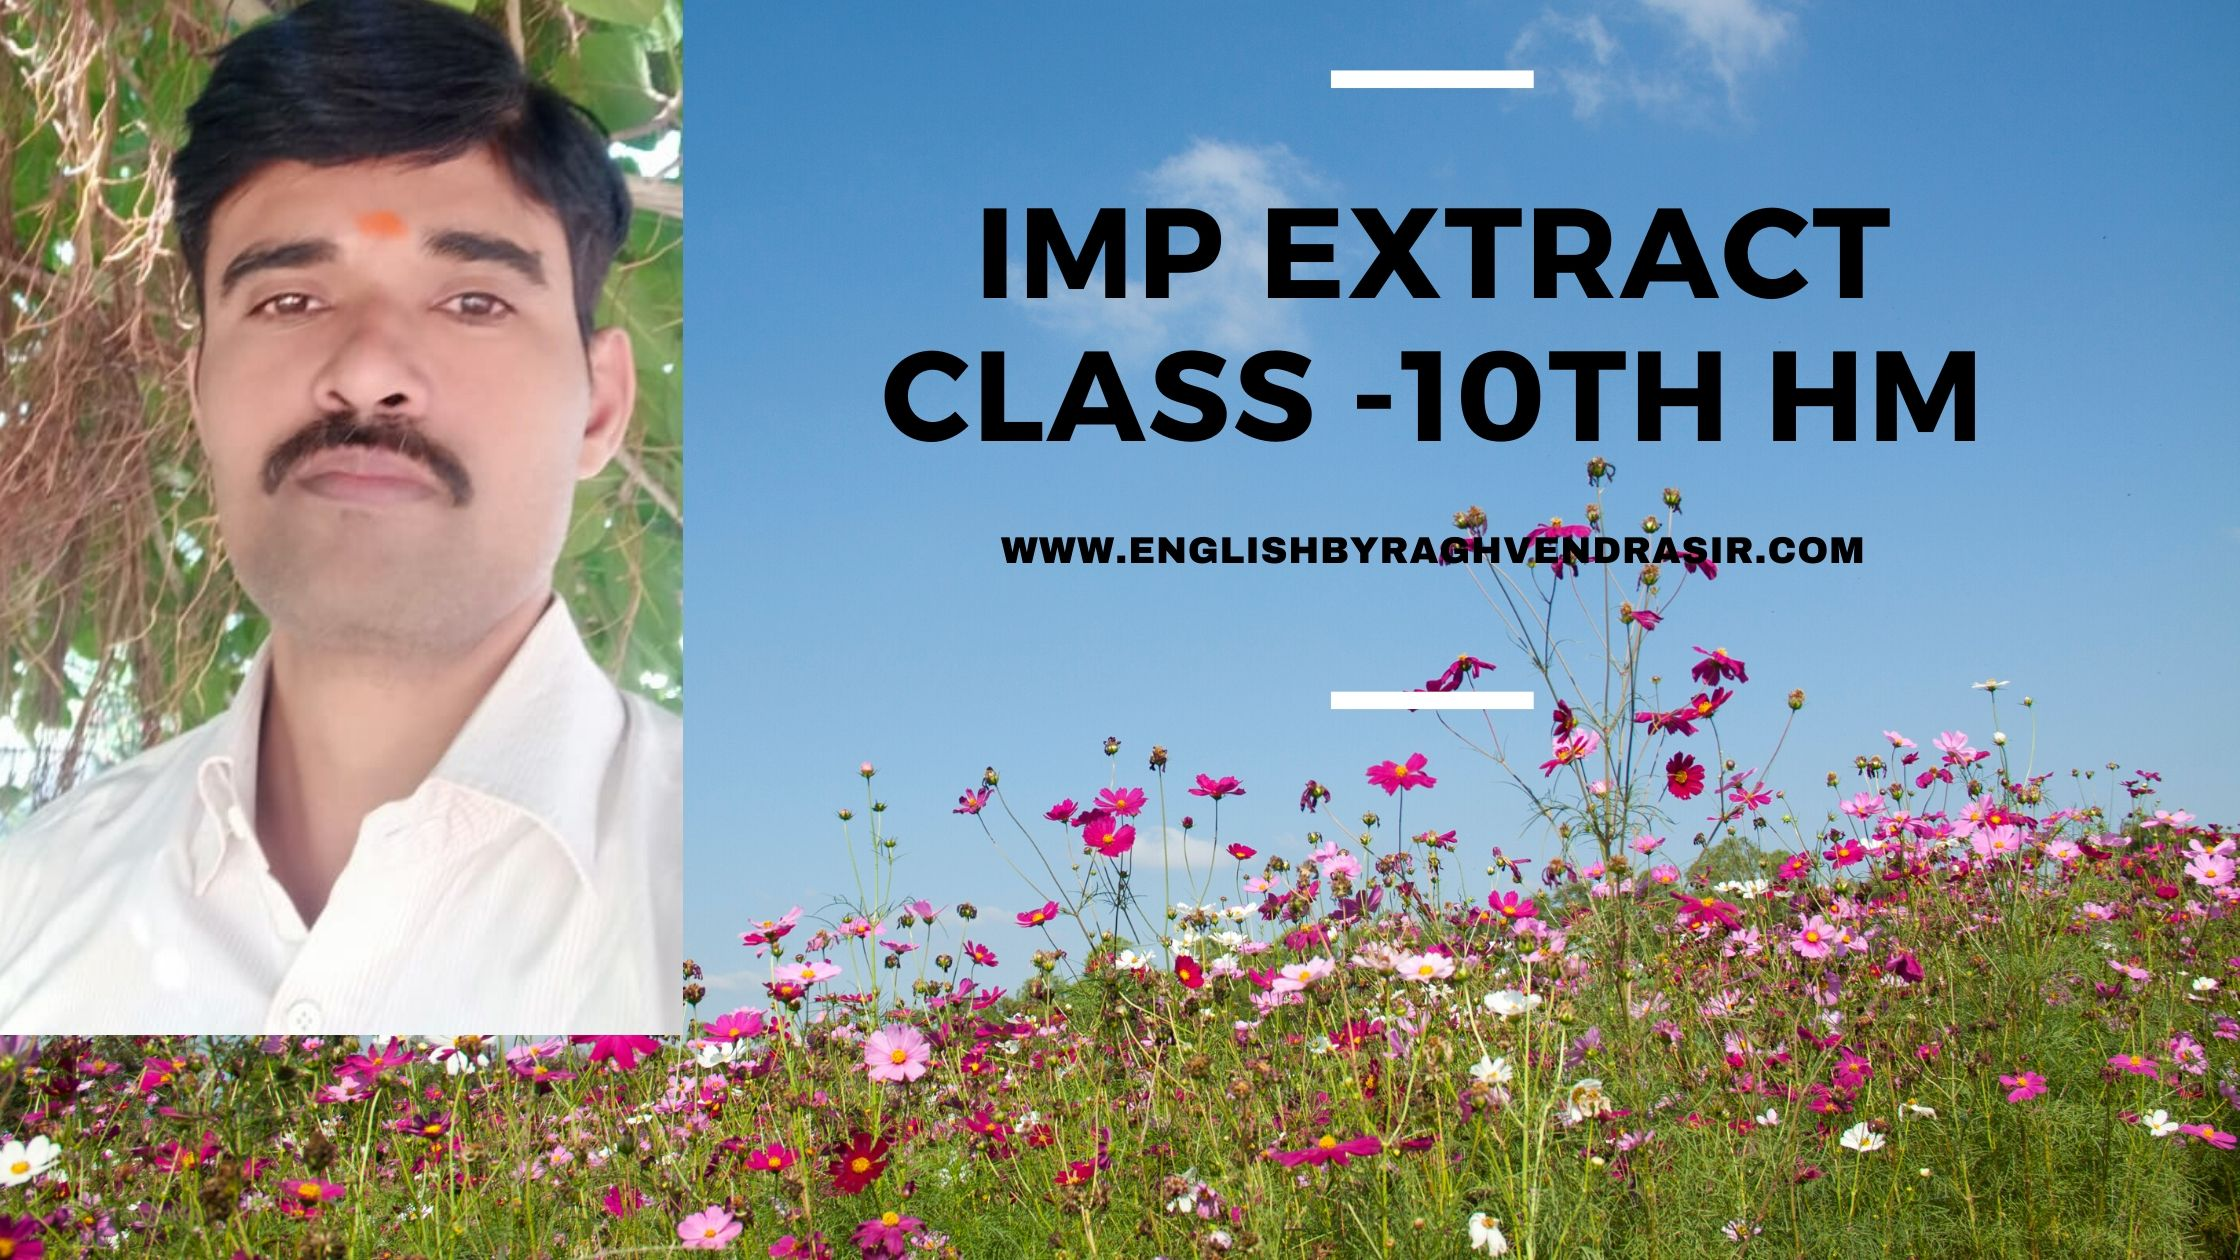 IMP EXTRACT CLASS -10th HM